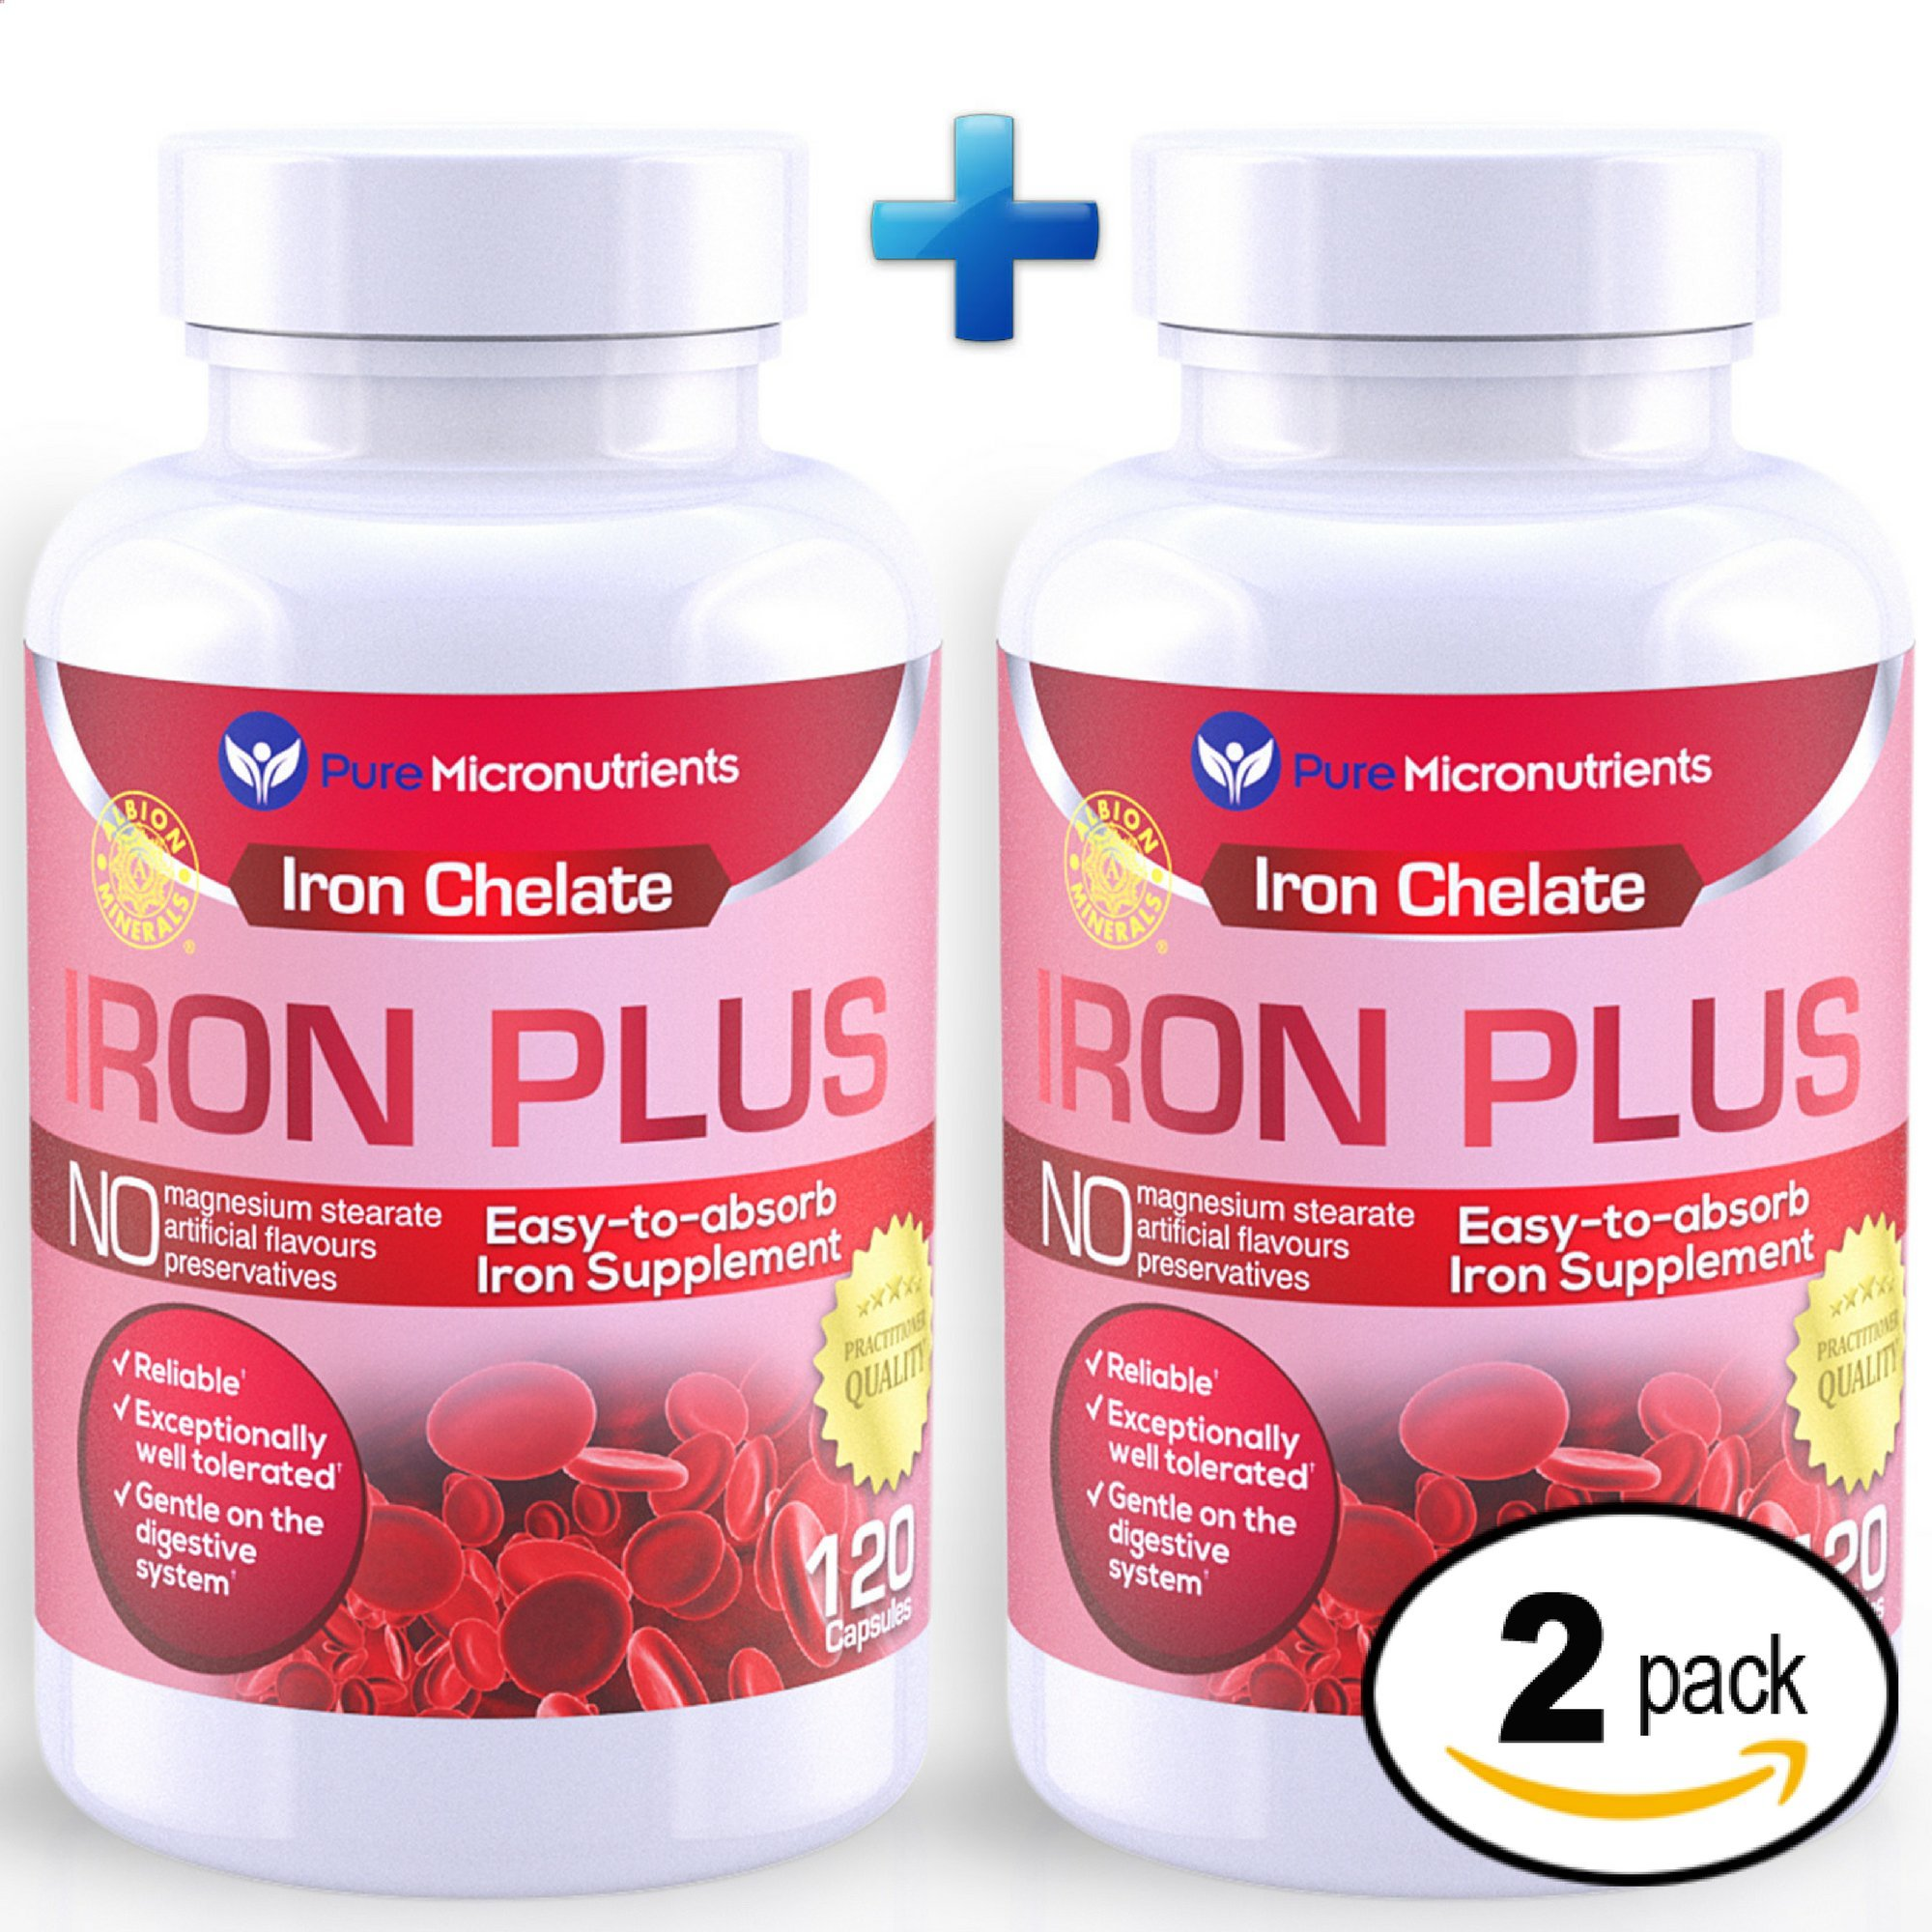 Pure Micronutrients Iron Plus Supplement, Natural Ferrous Chelate, Bisglycinate 25mg + Vitamin C, B6, B12, Folic Acid, 120 Count (2-Pack)